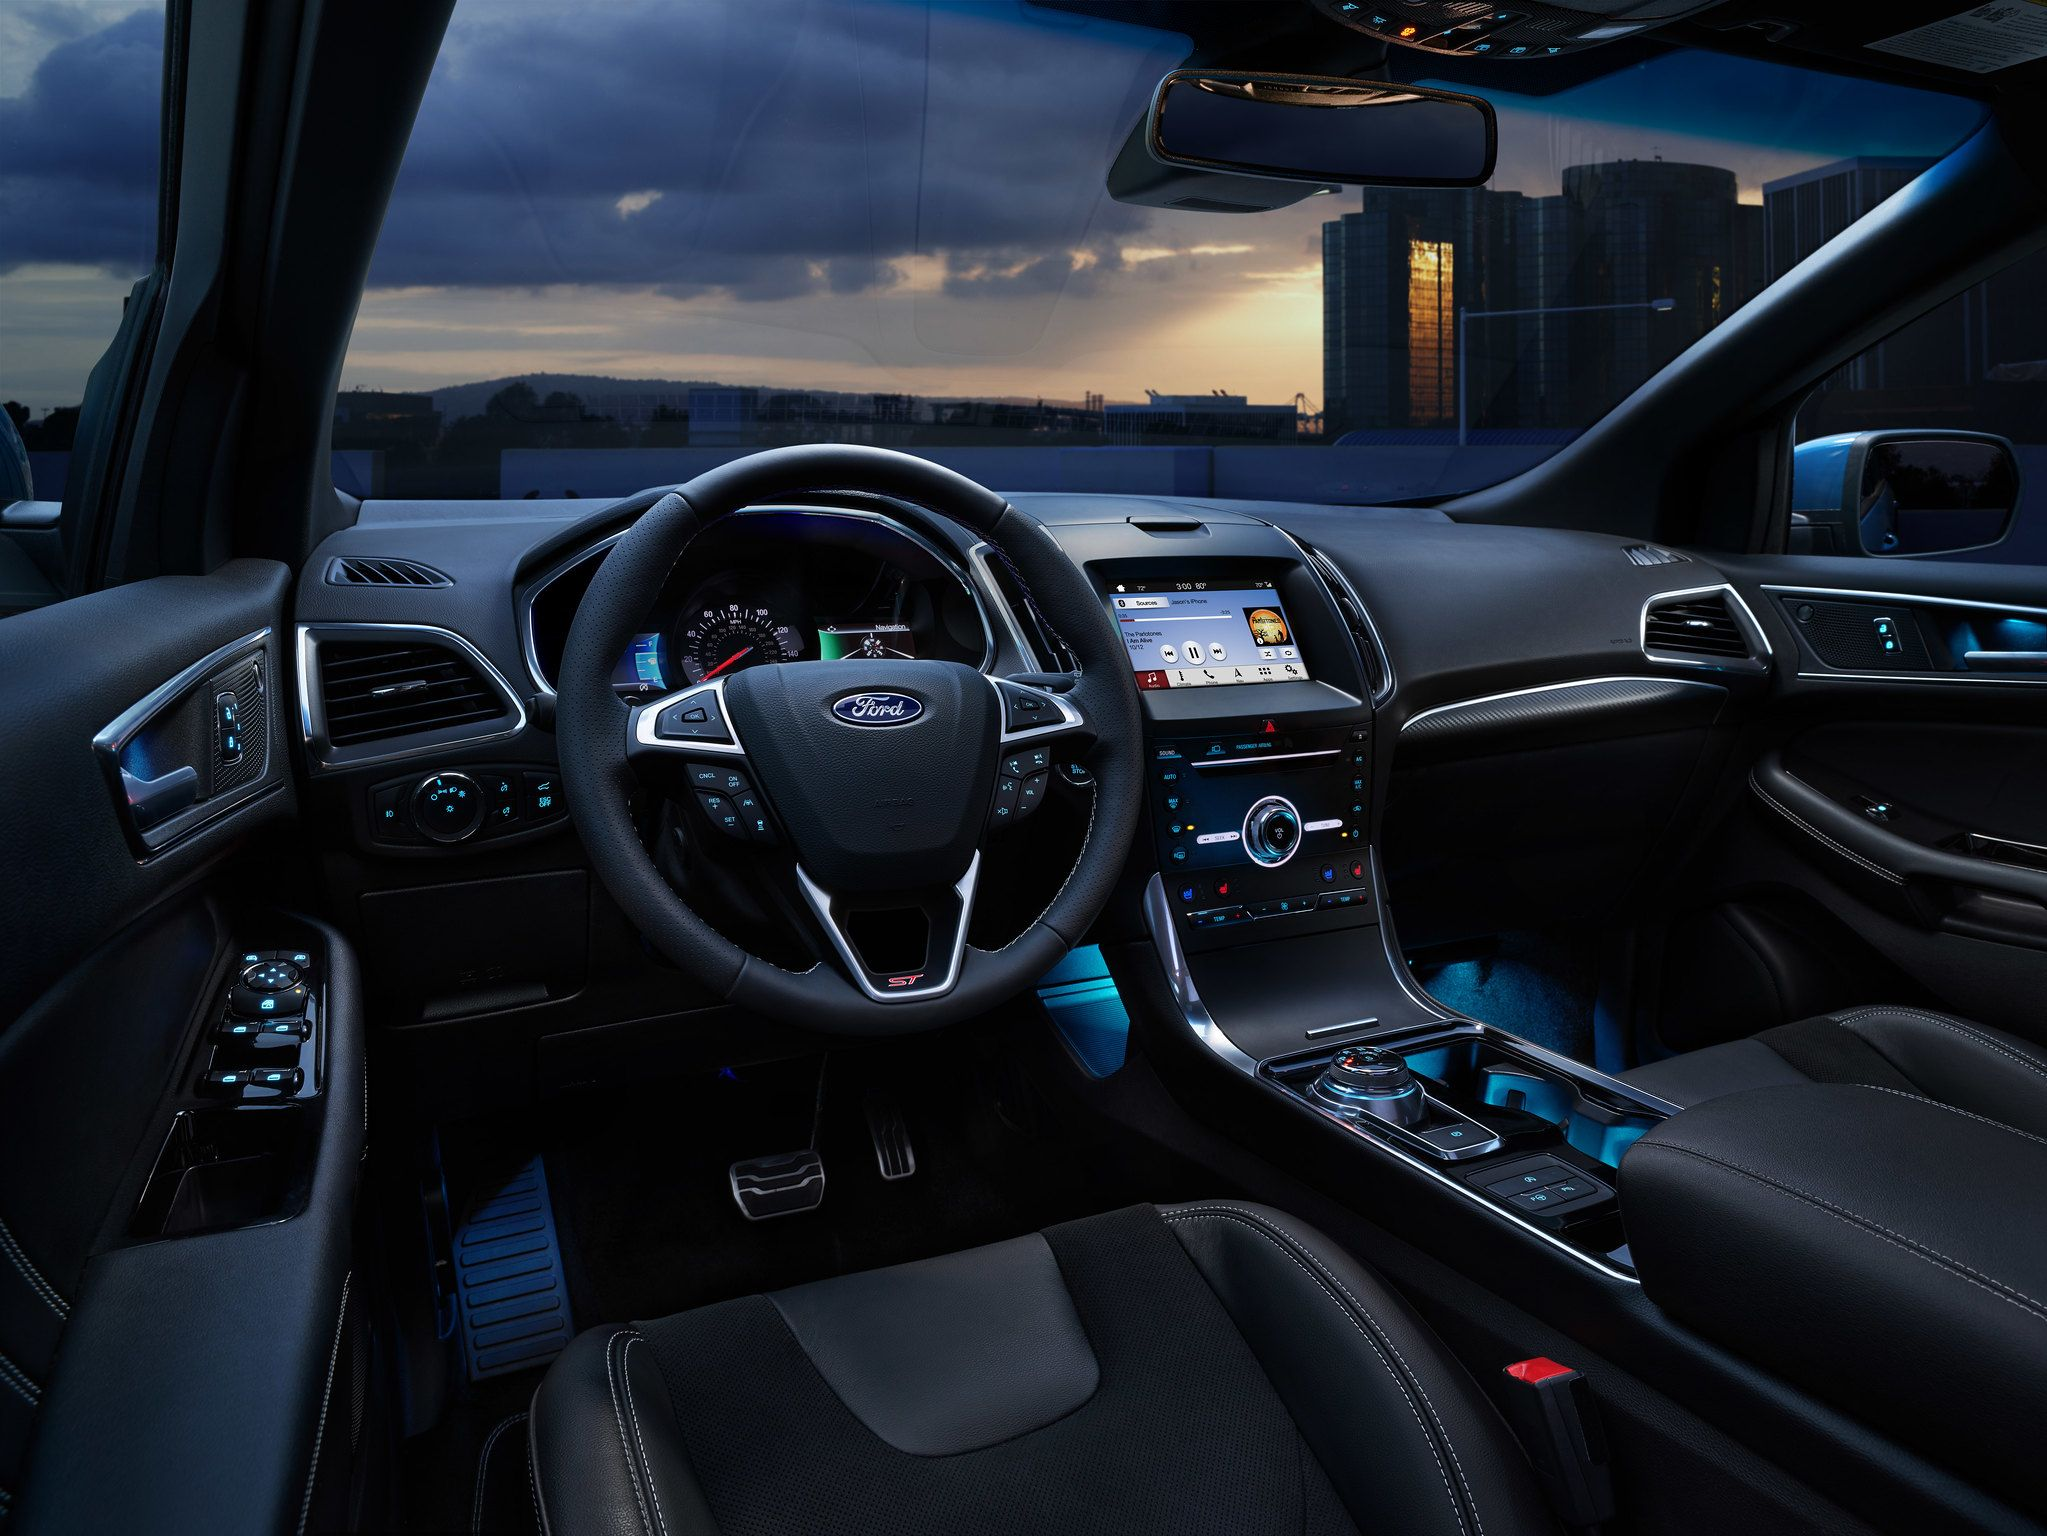 2019 Ford Edge Technology in Inverness, FL